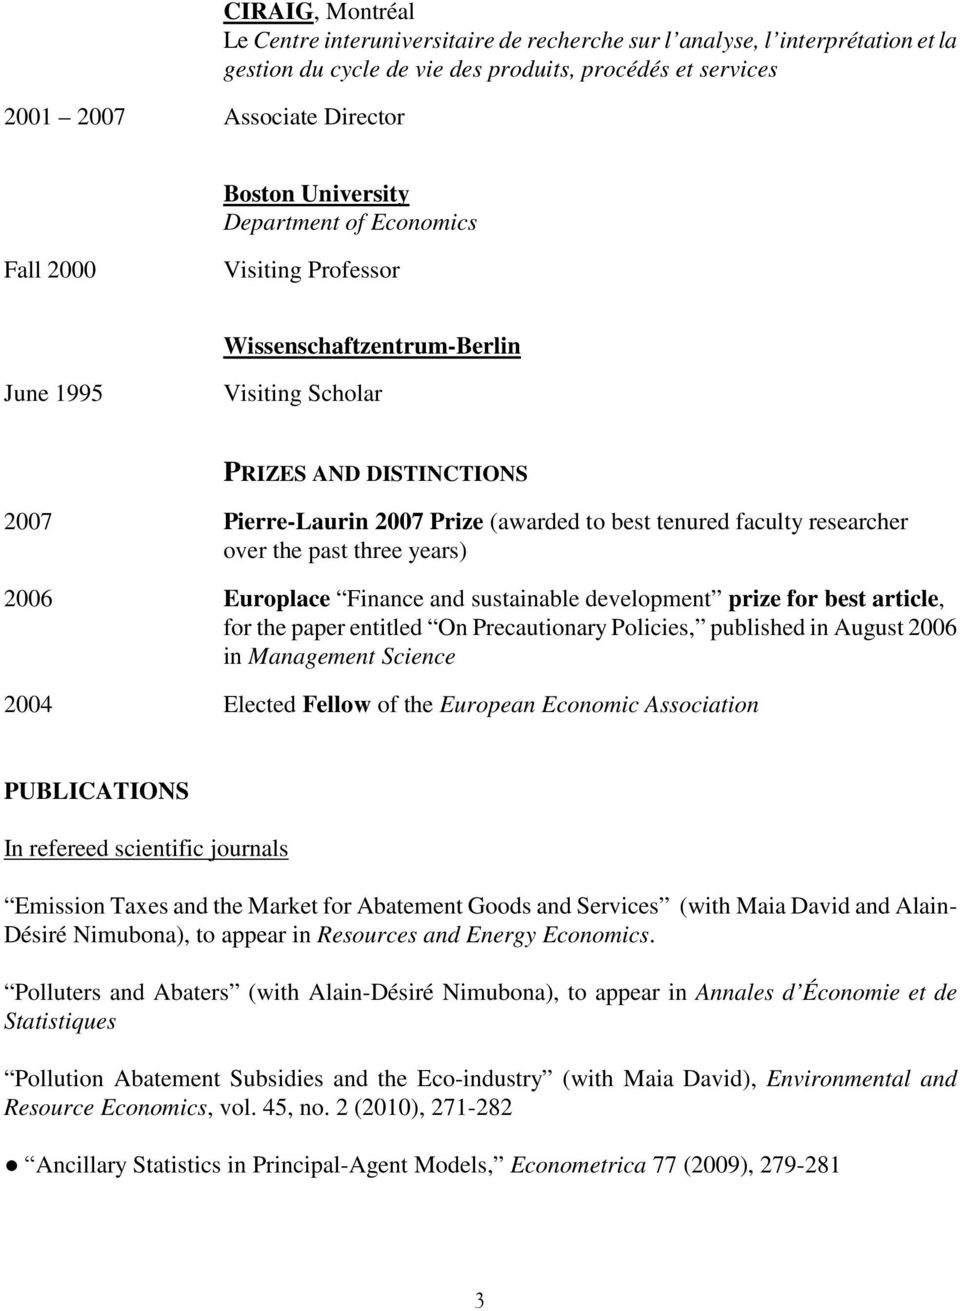 faculty researcher over the past three years) 2006 Europlace Finance and sustainable development prize for best article, for the paper entitled On Precautionary Policies, published in August 2006 in